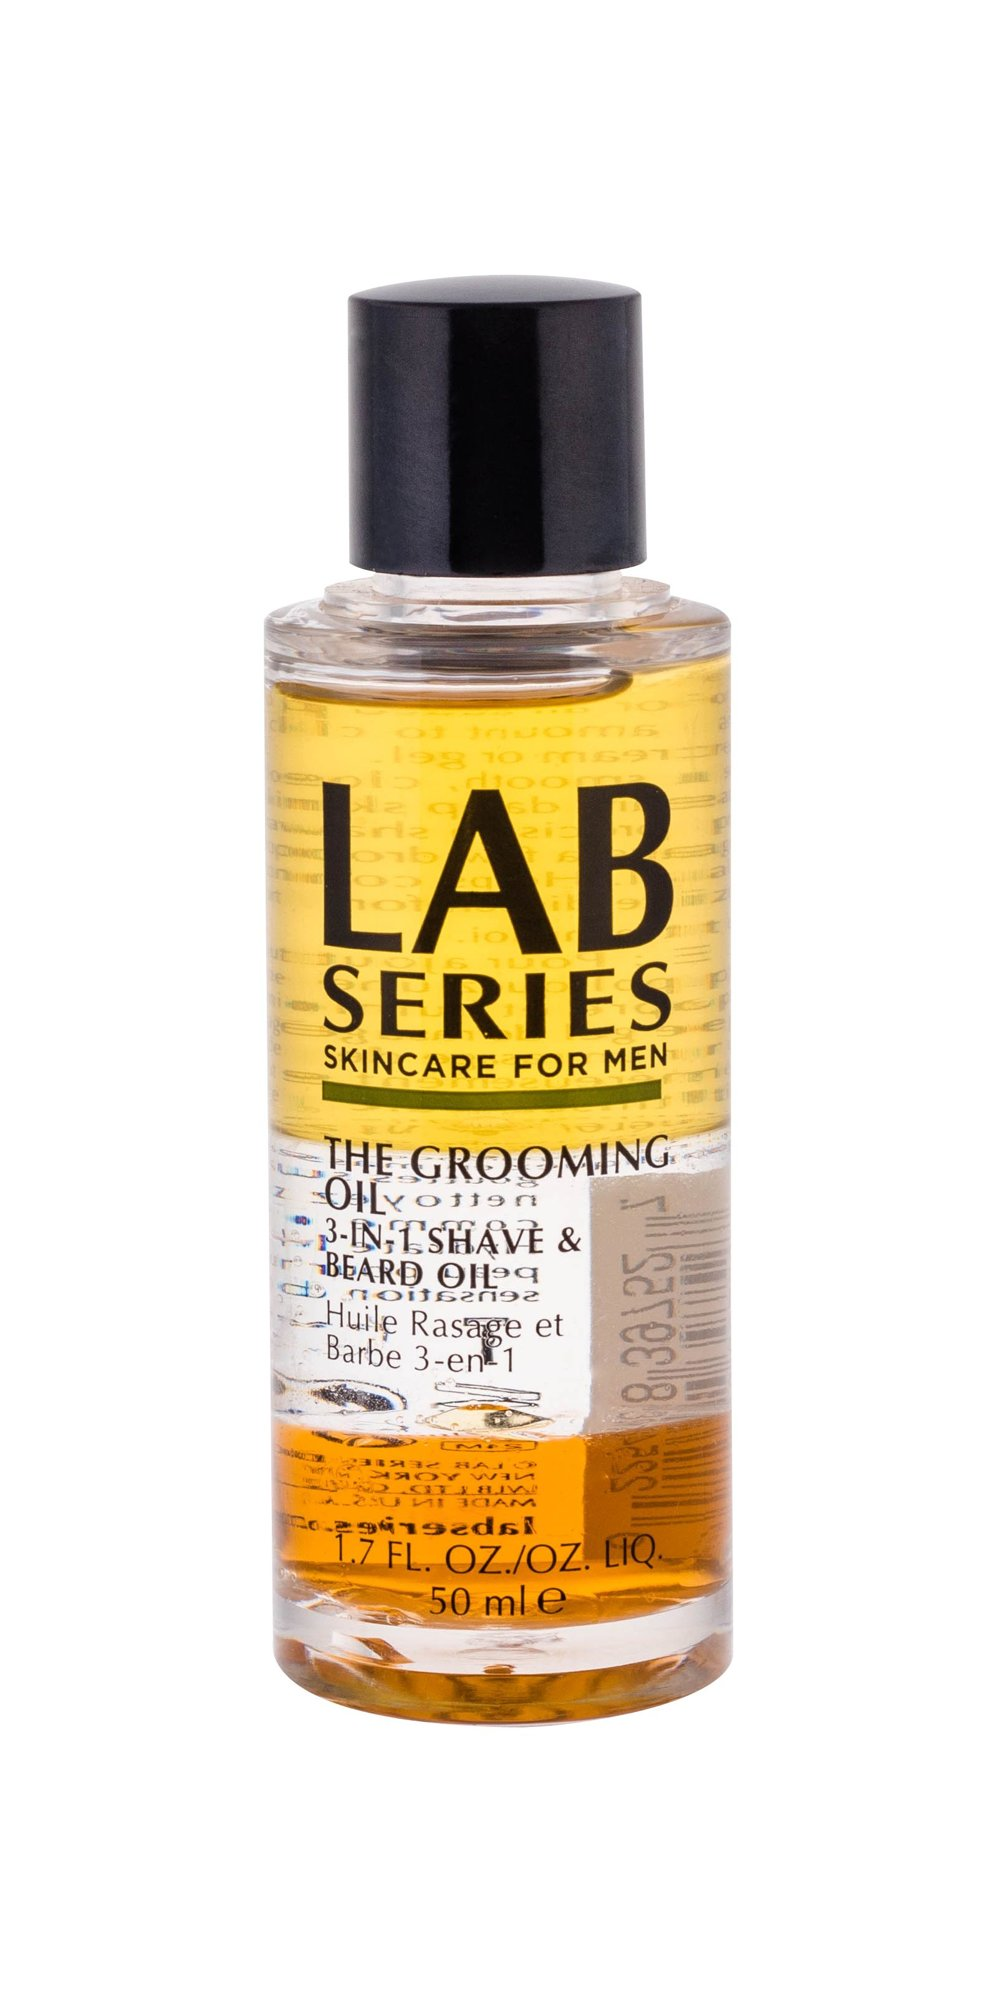 Lab Series Shave Beard Oil 50ml  The Grooming Oil